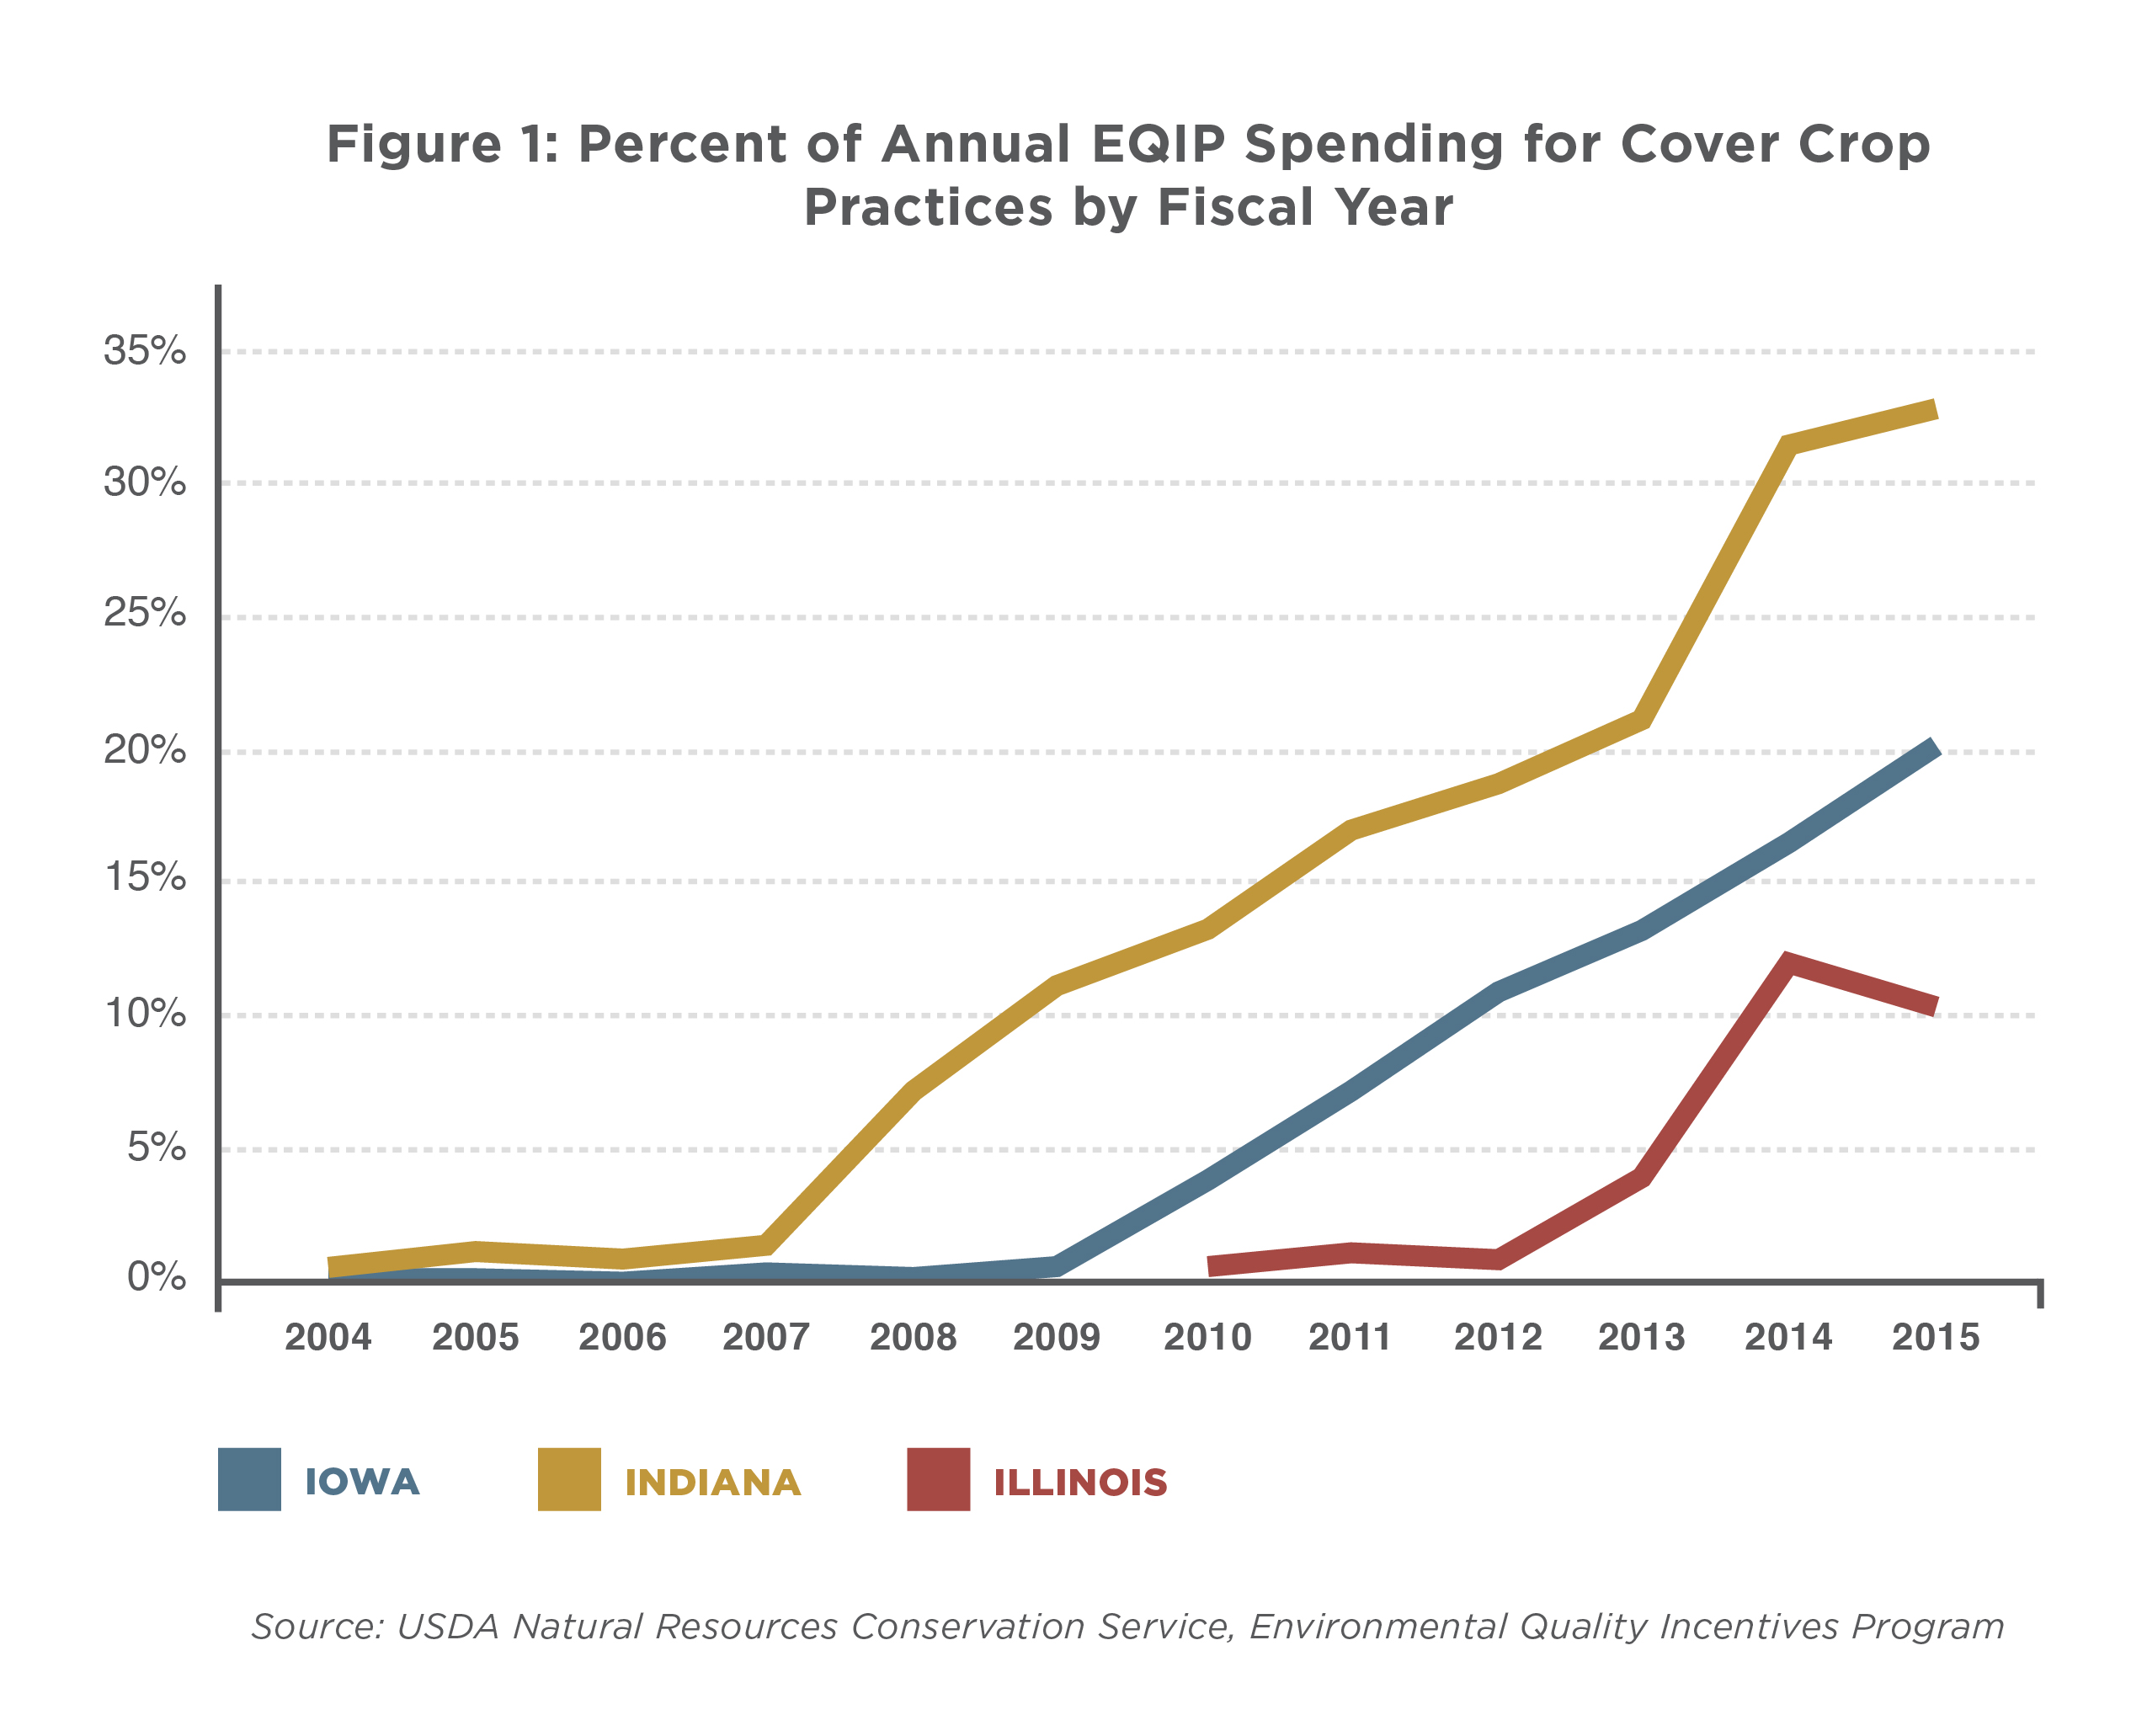 Figure showing percent of EQIP spending for cover crop practices